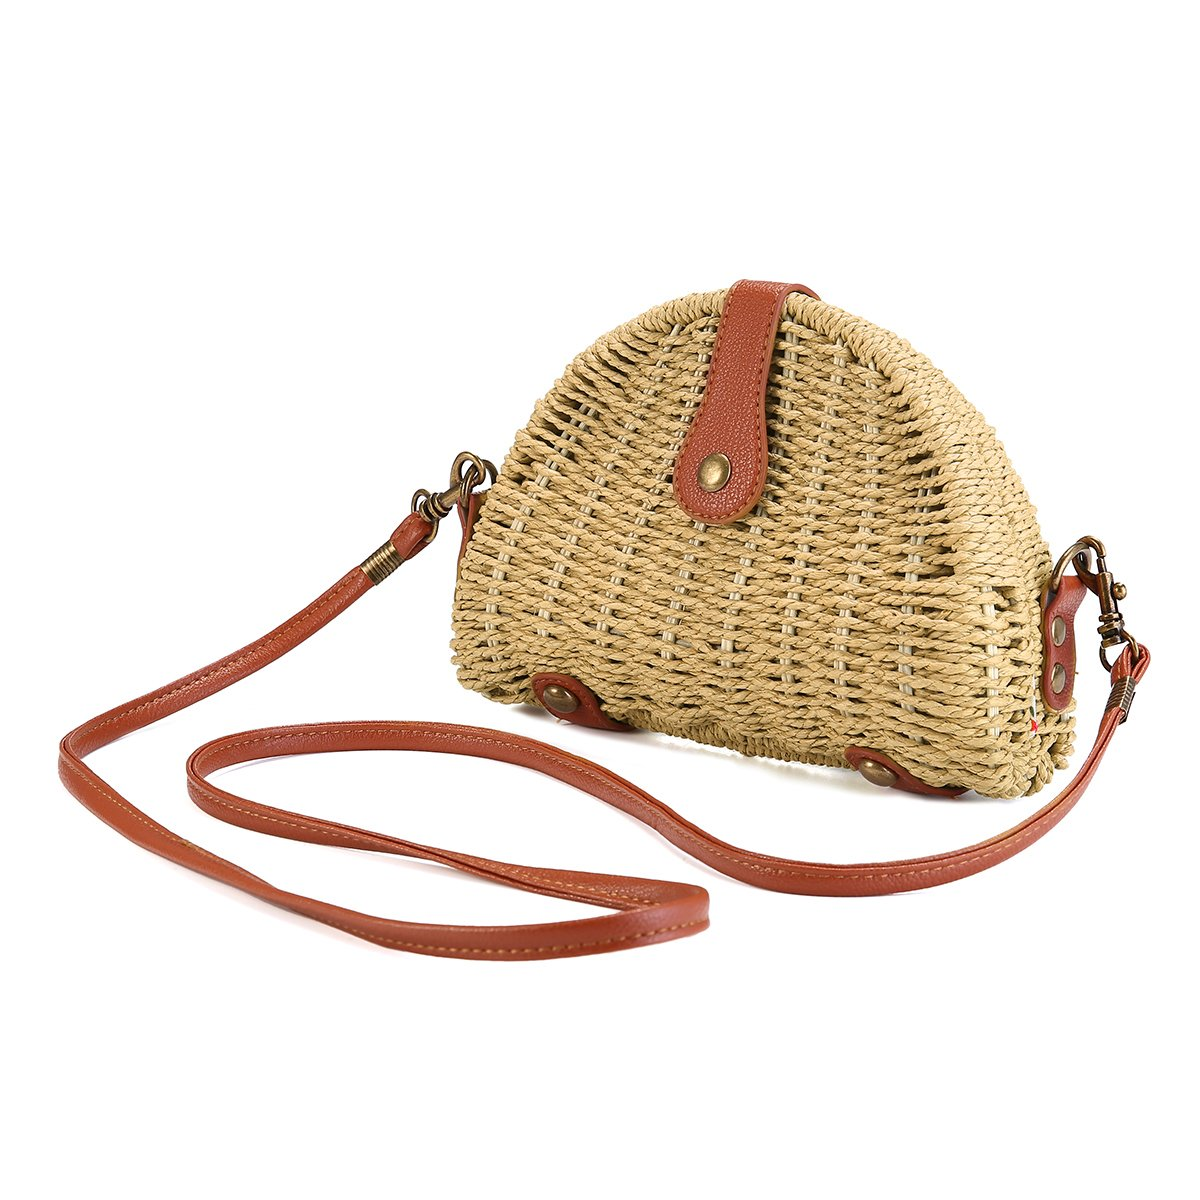 Crossbody Straw Bag, JOSEKO Womens Straw Handbag Shoulder Bag for Beach Travel and Everyday Use Off White 8.07